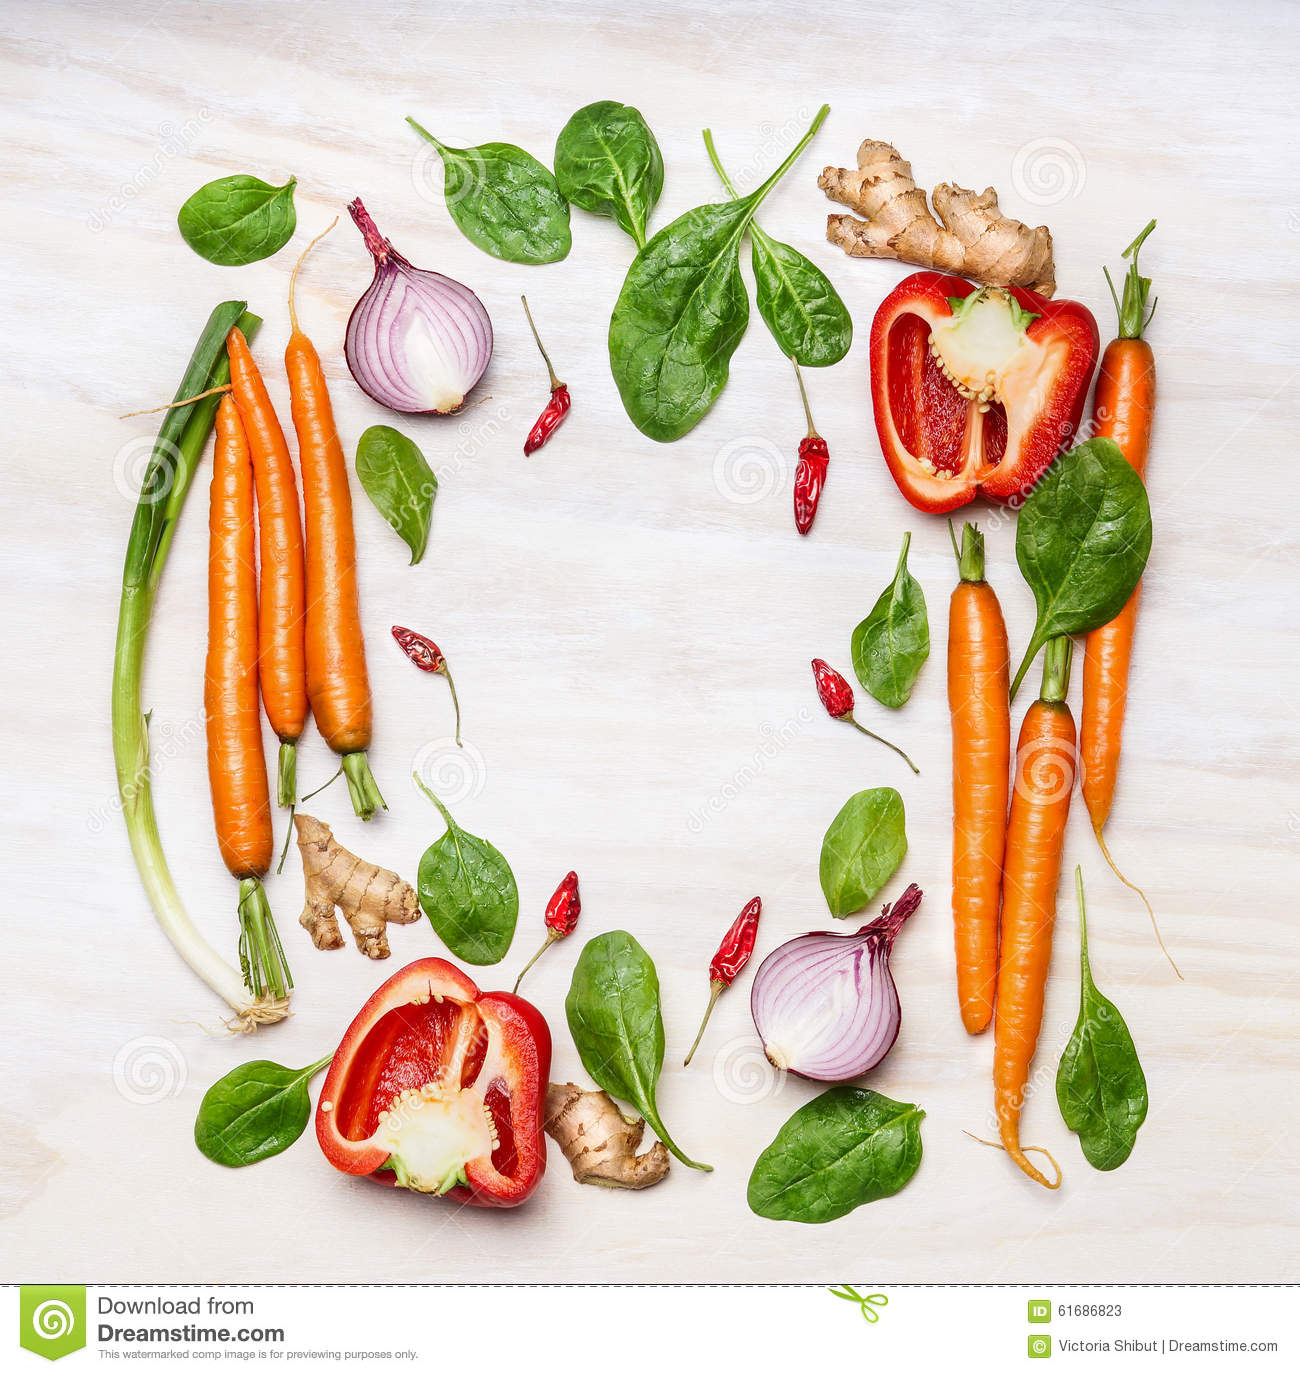 Fresh vegetables ingredients for cooking , composing on white wooden background, top view, frame. Healthy food